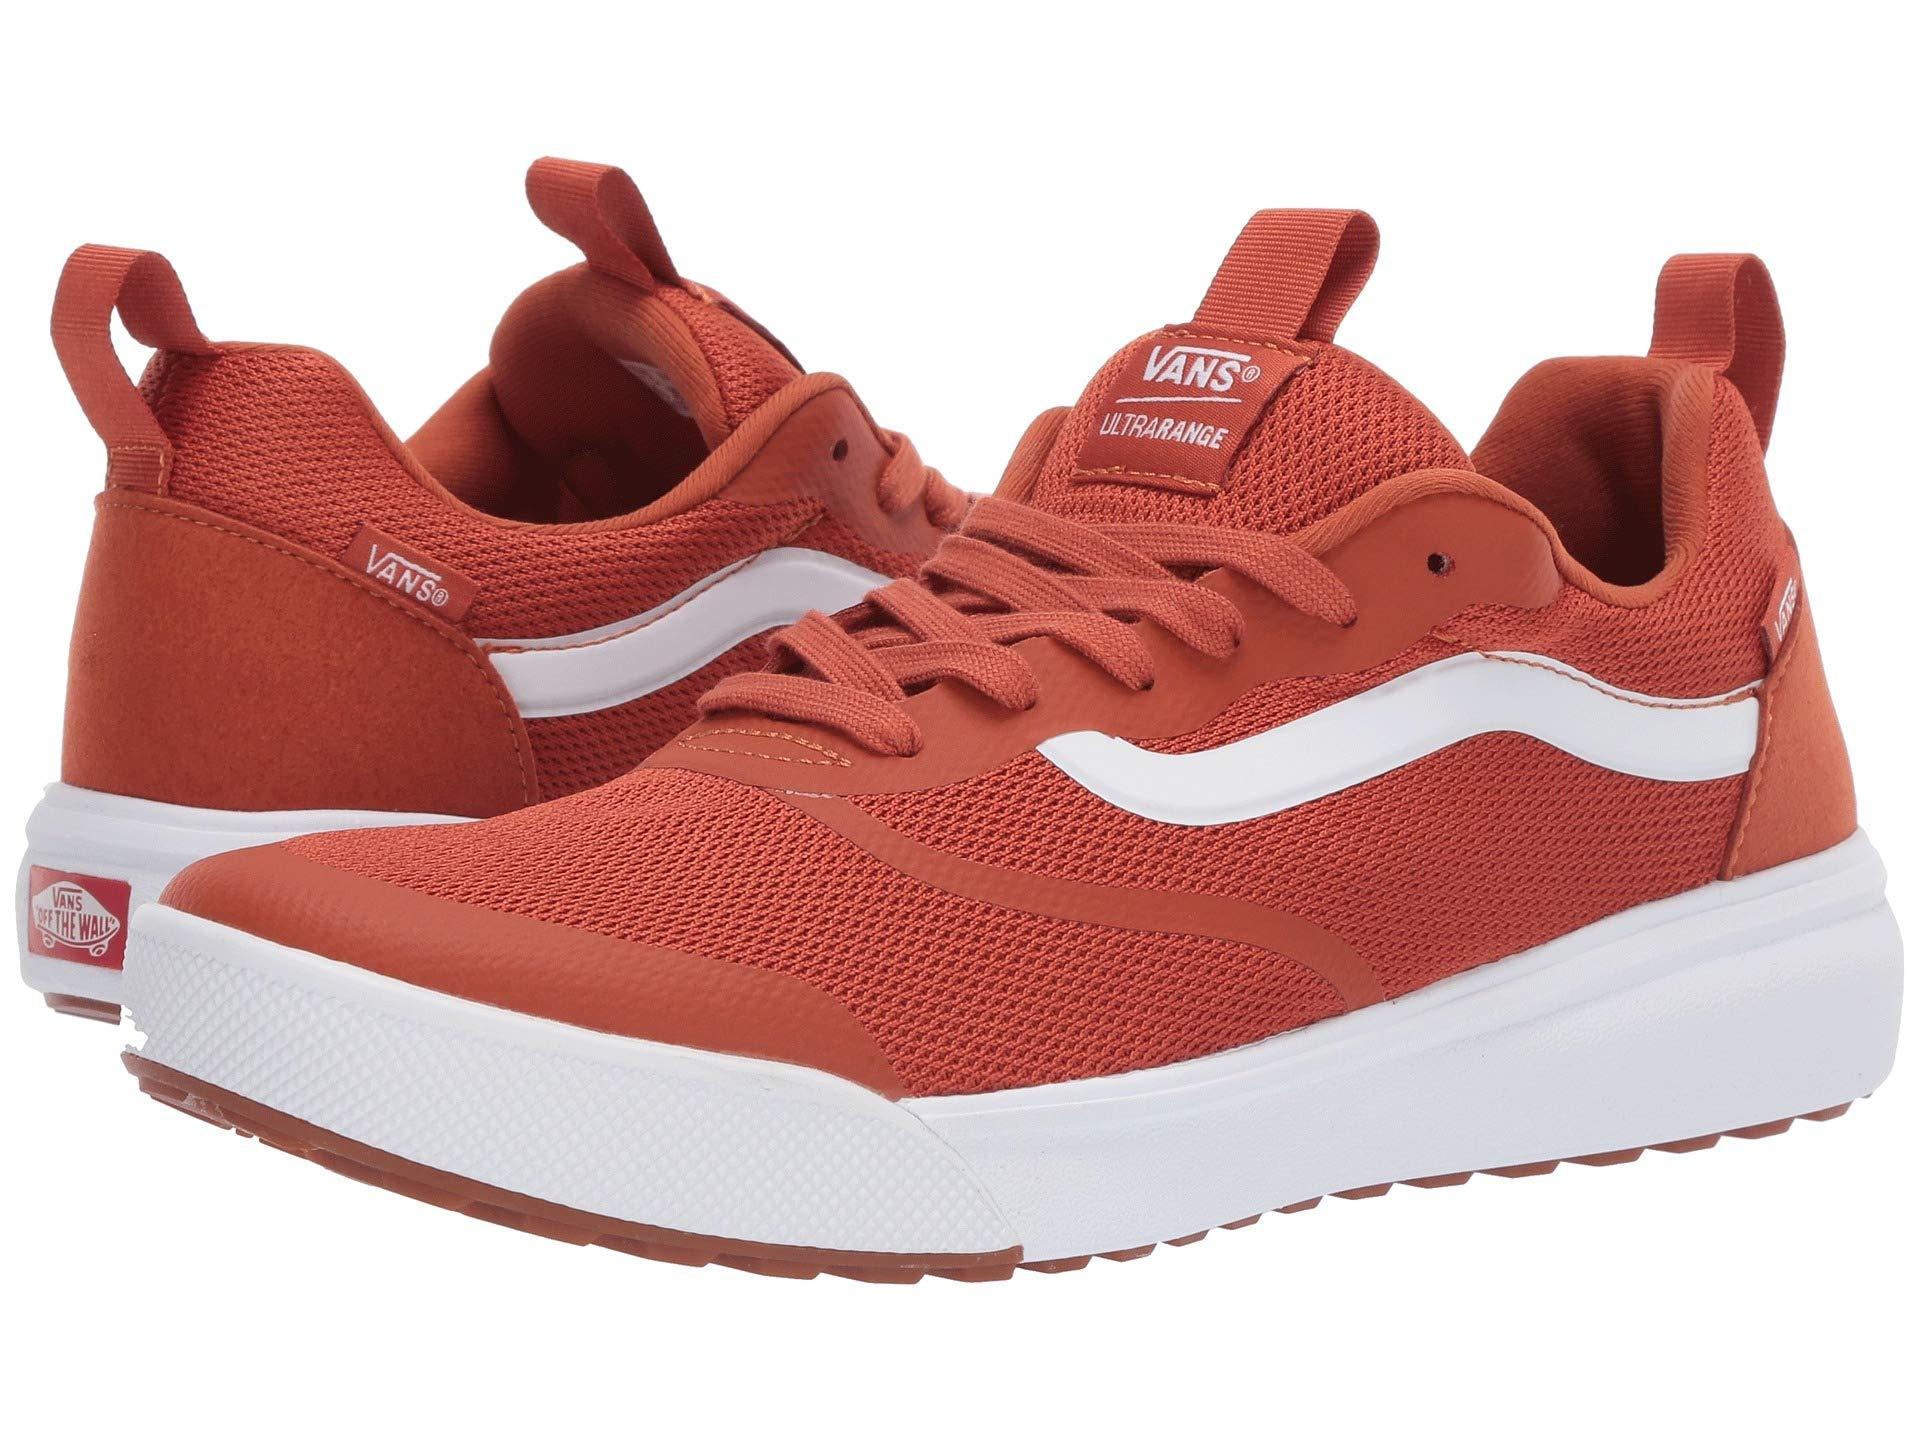 60b37480bc77bc Vans - Red Ultrarange Rapidweld (potters Clay true White) Shoes for Men -.  View fullscreen